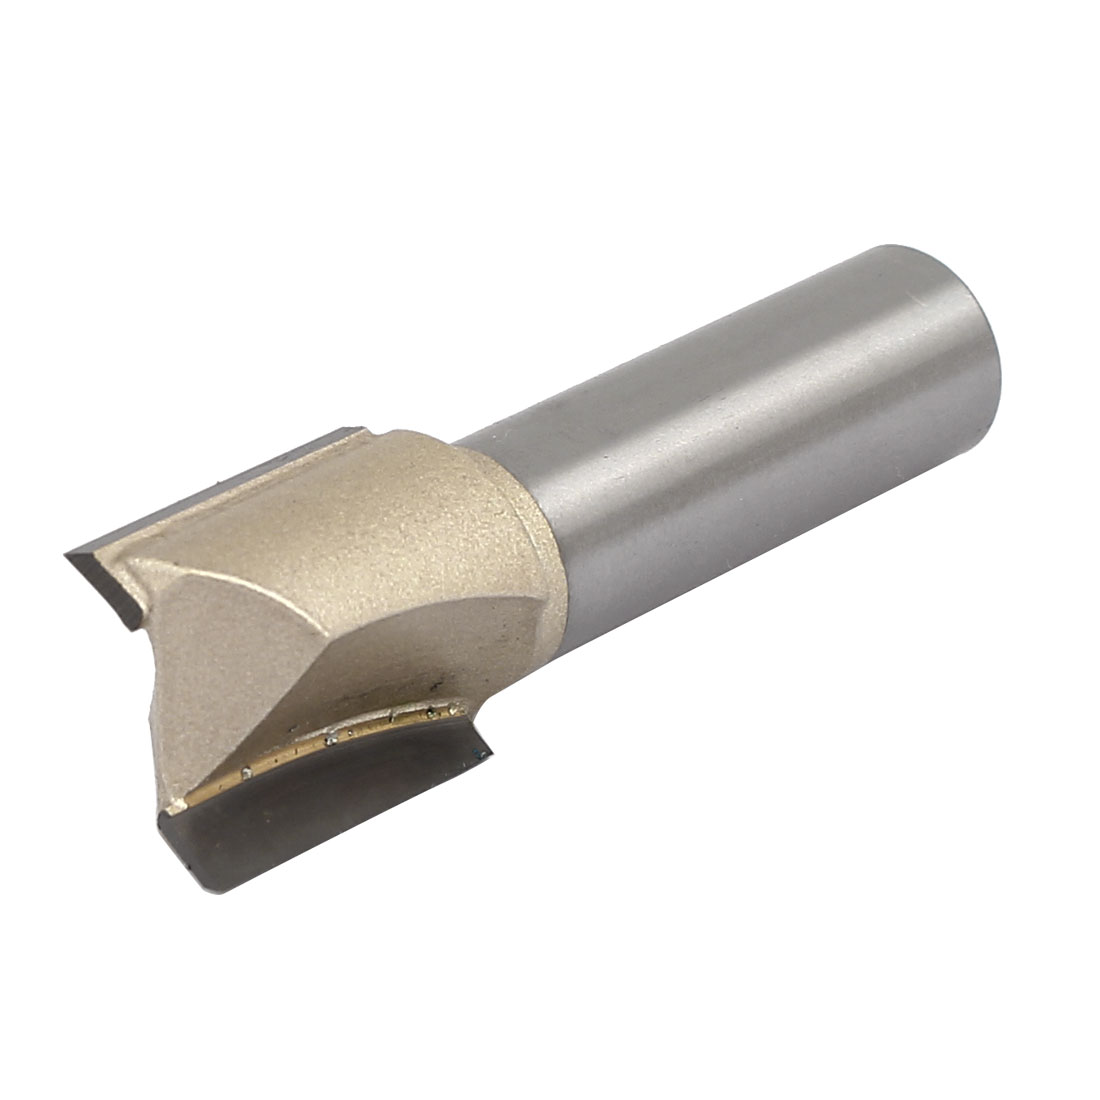 1/2-inch Shank 3/4-inch Cutting Dia 2 Flutes Straight Router Bit Cutter - image 4 of 5